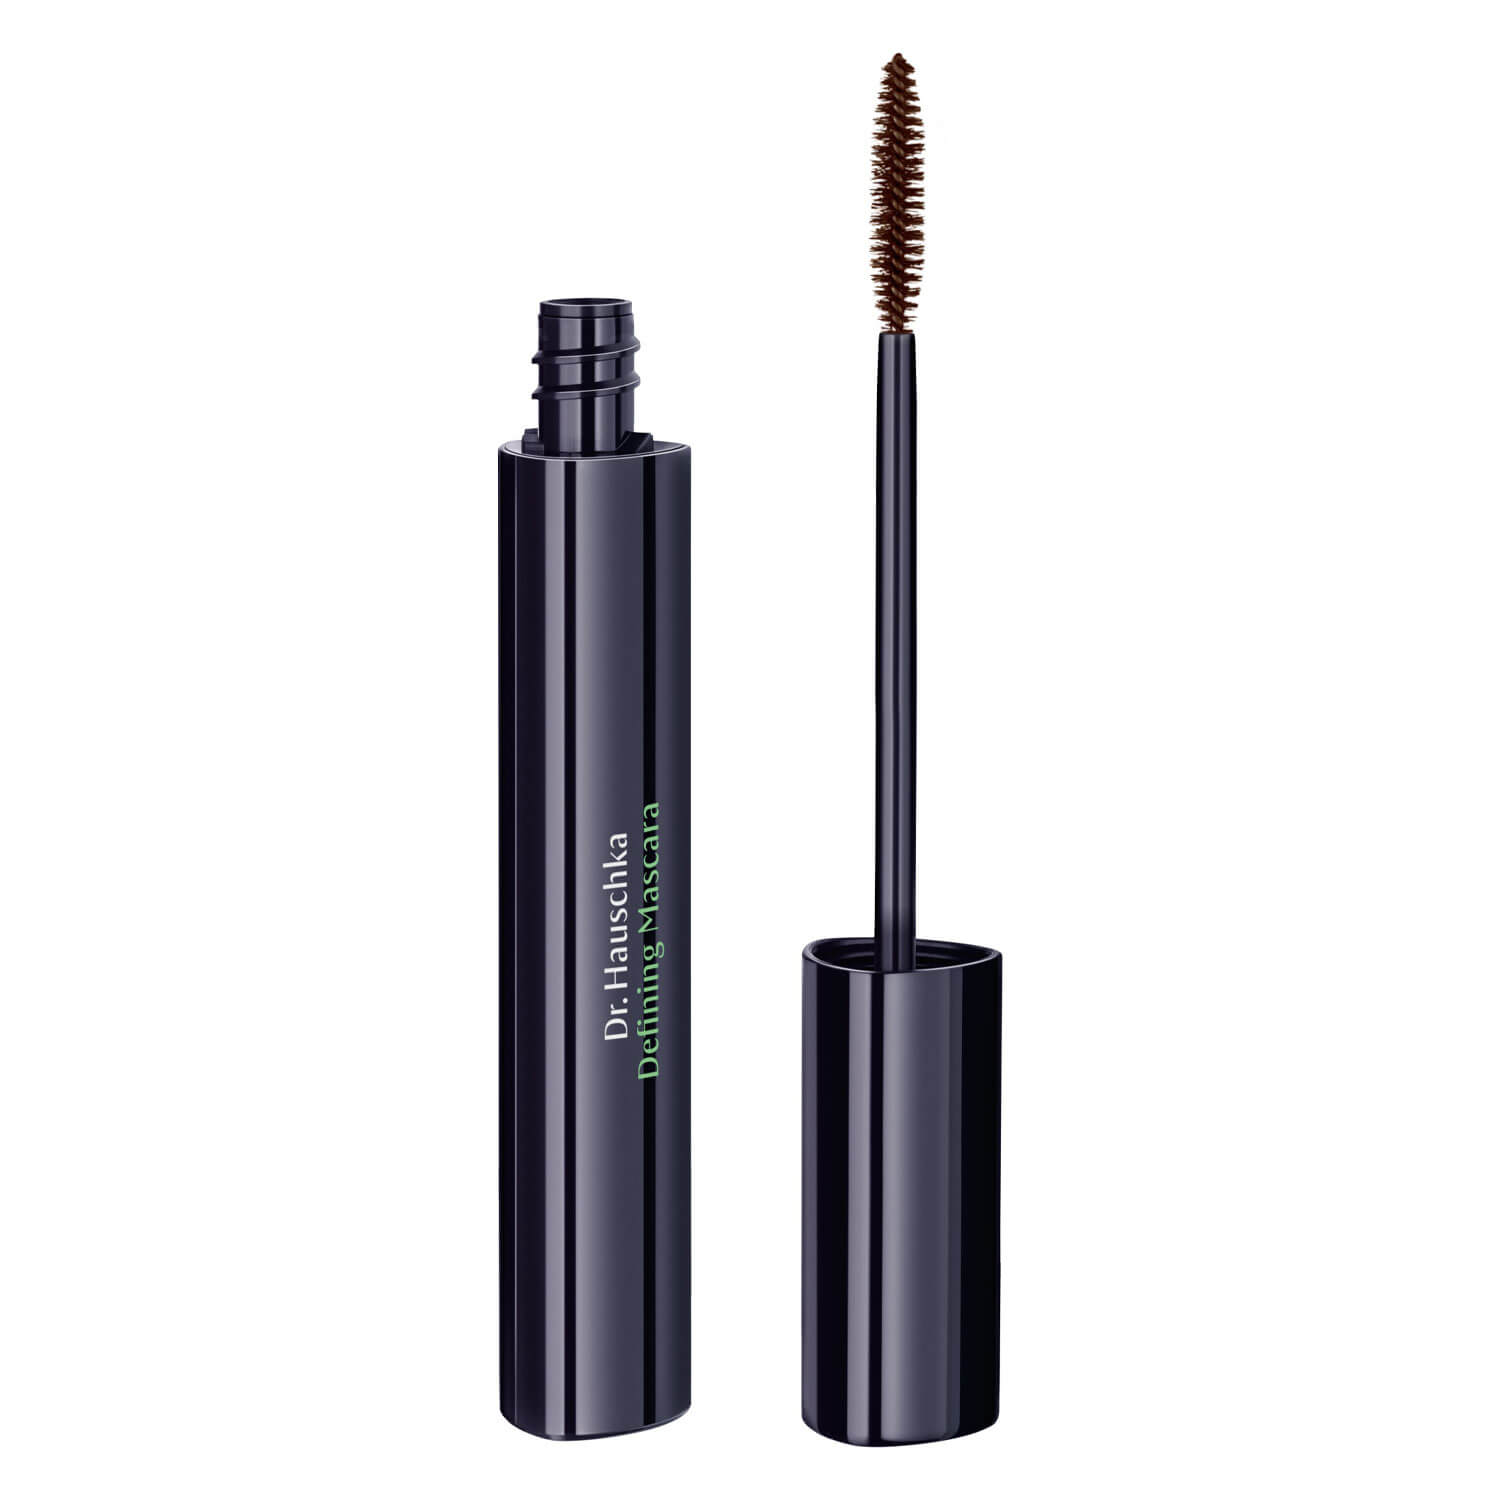 Dr. Hauschka Eyes - Defining Mascara brown 02